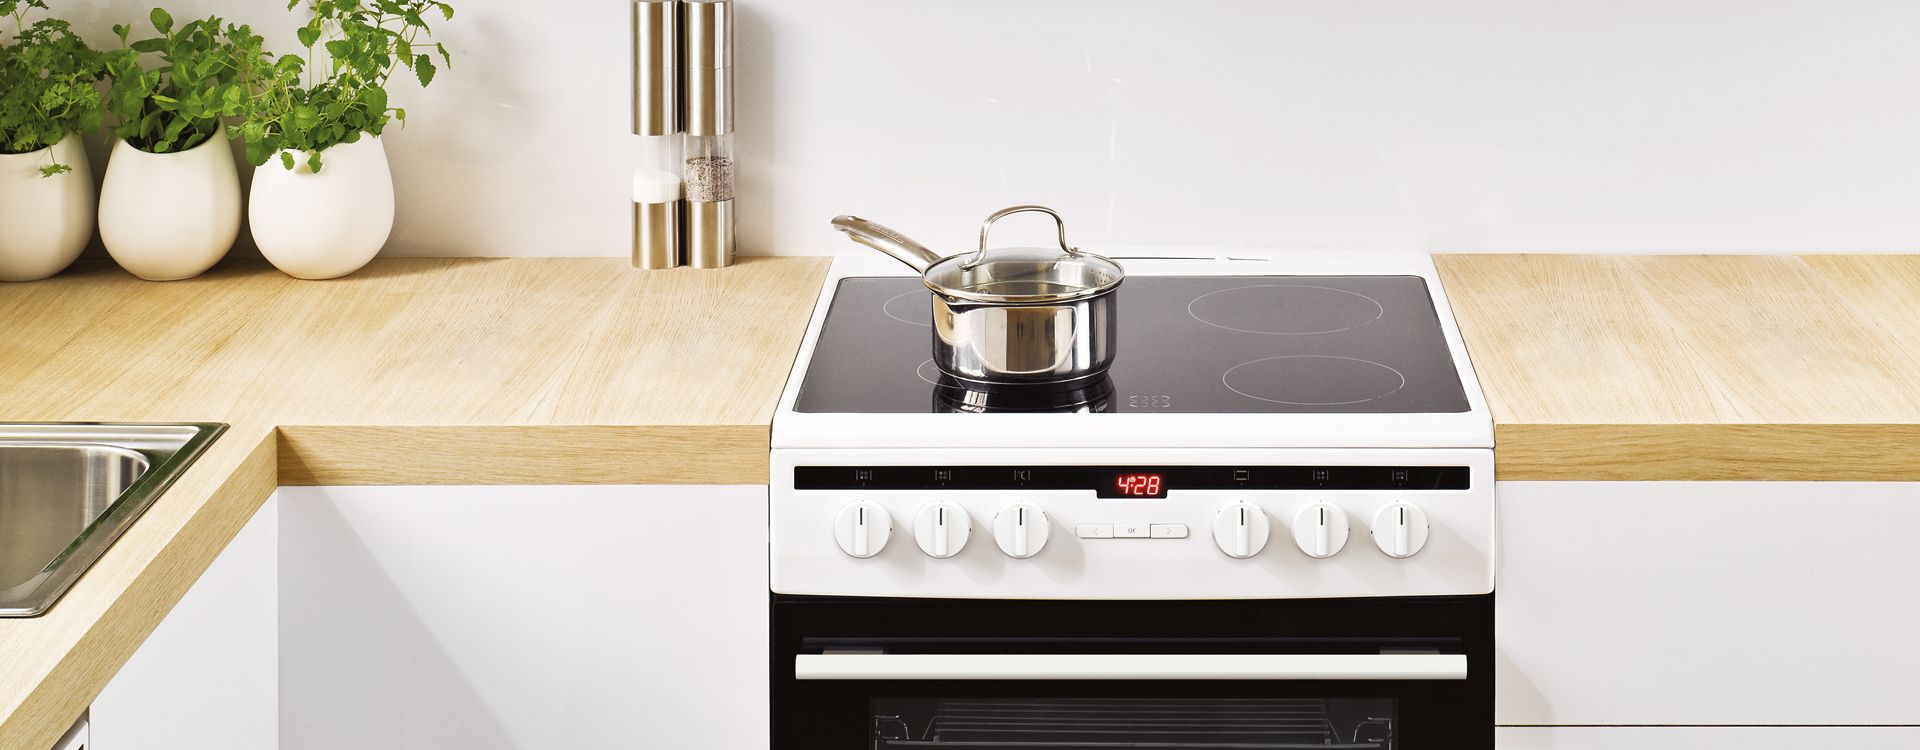 Double cavity freestanding cooker in kitchen set